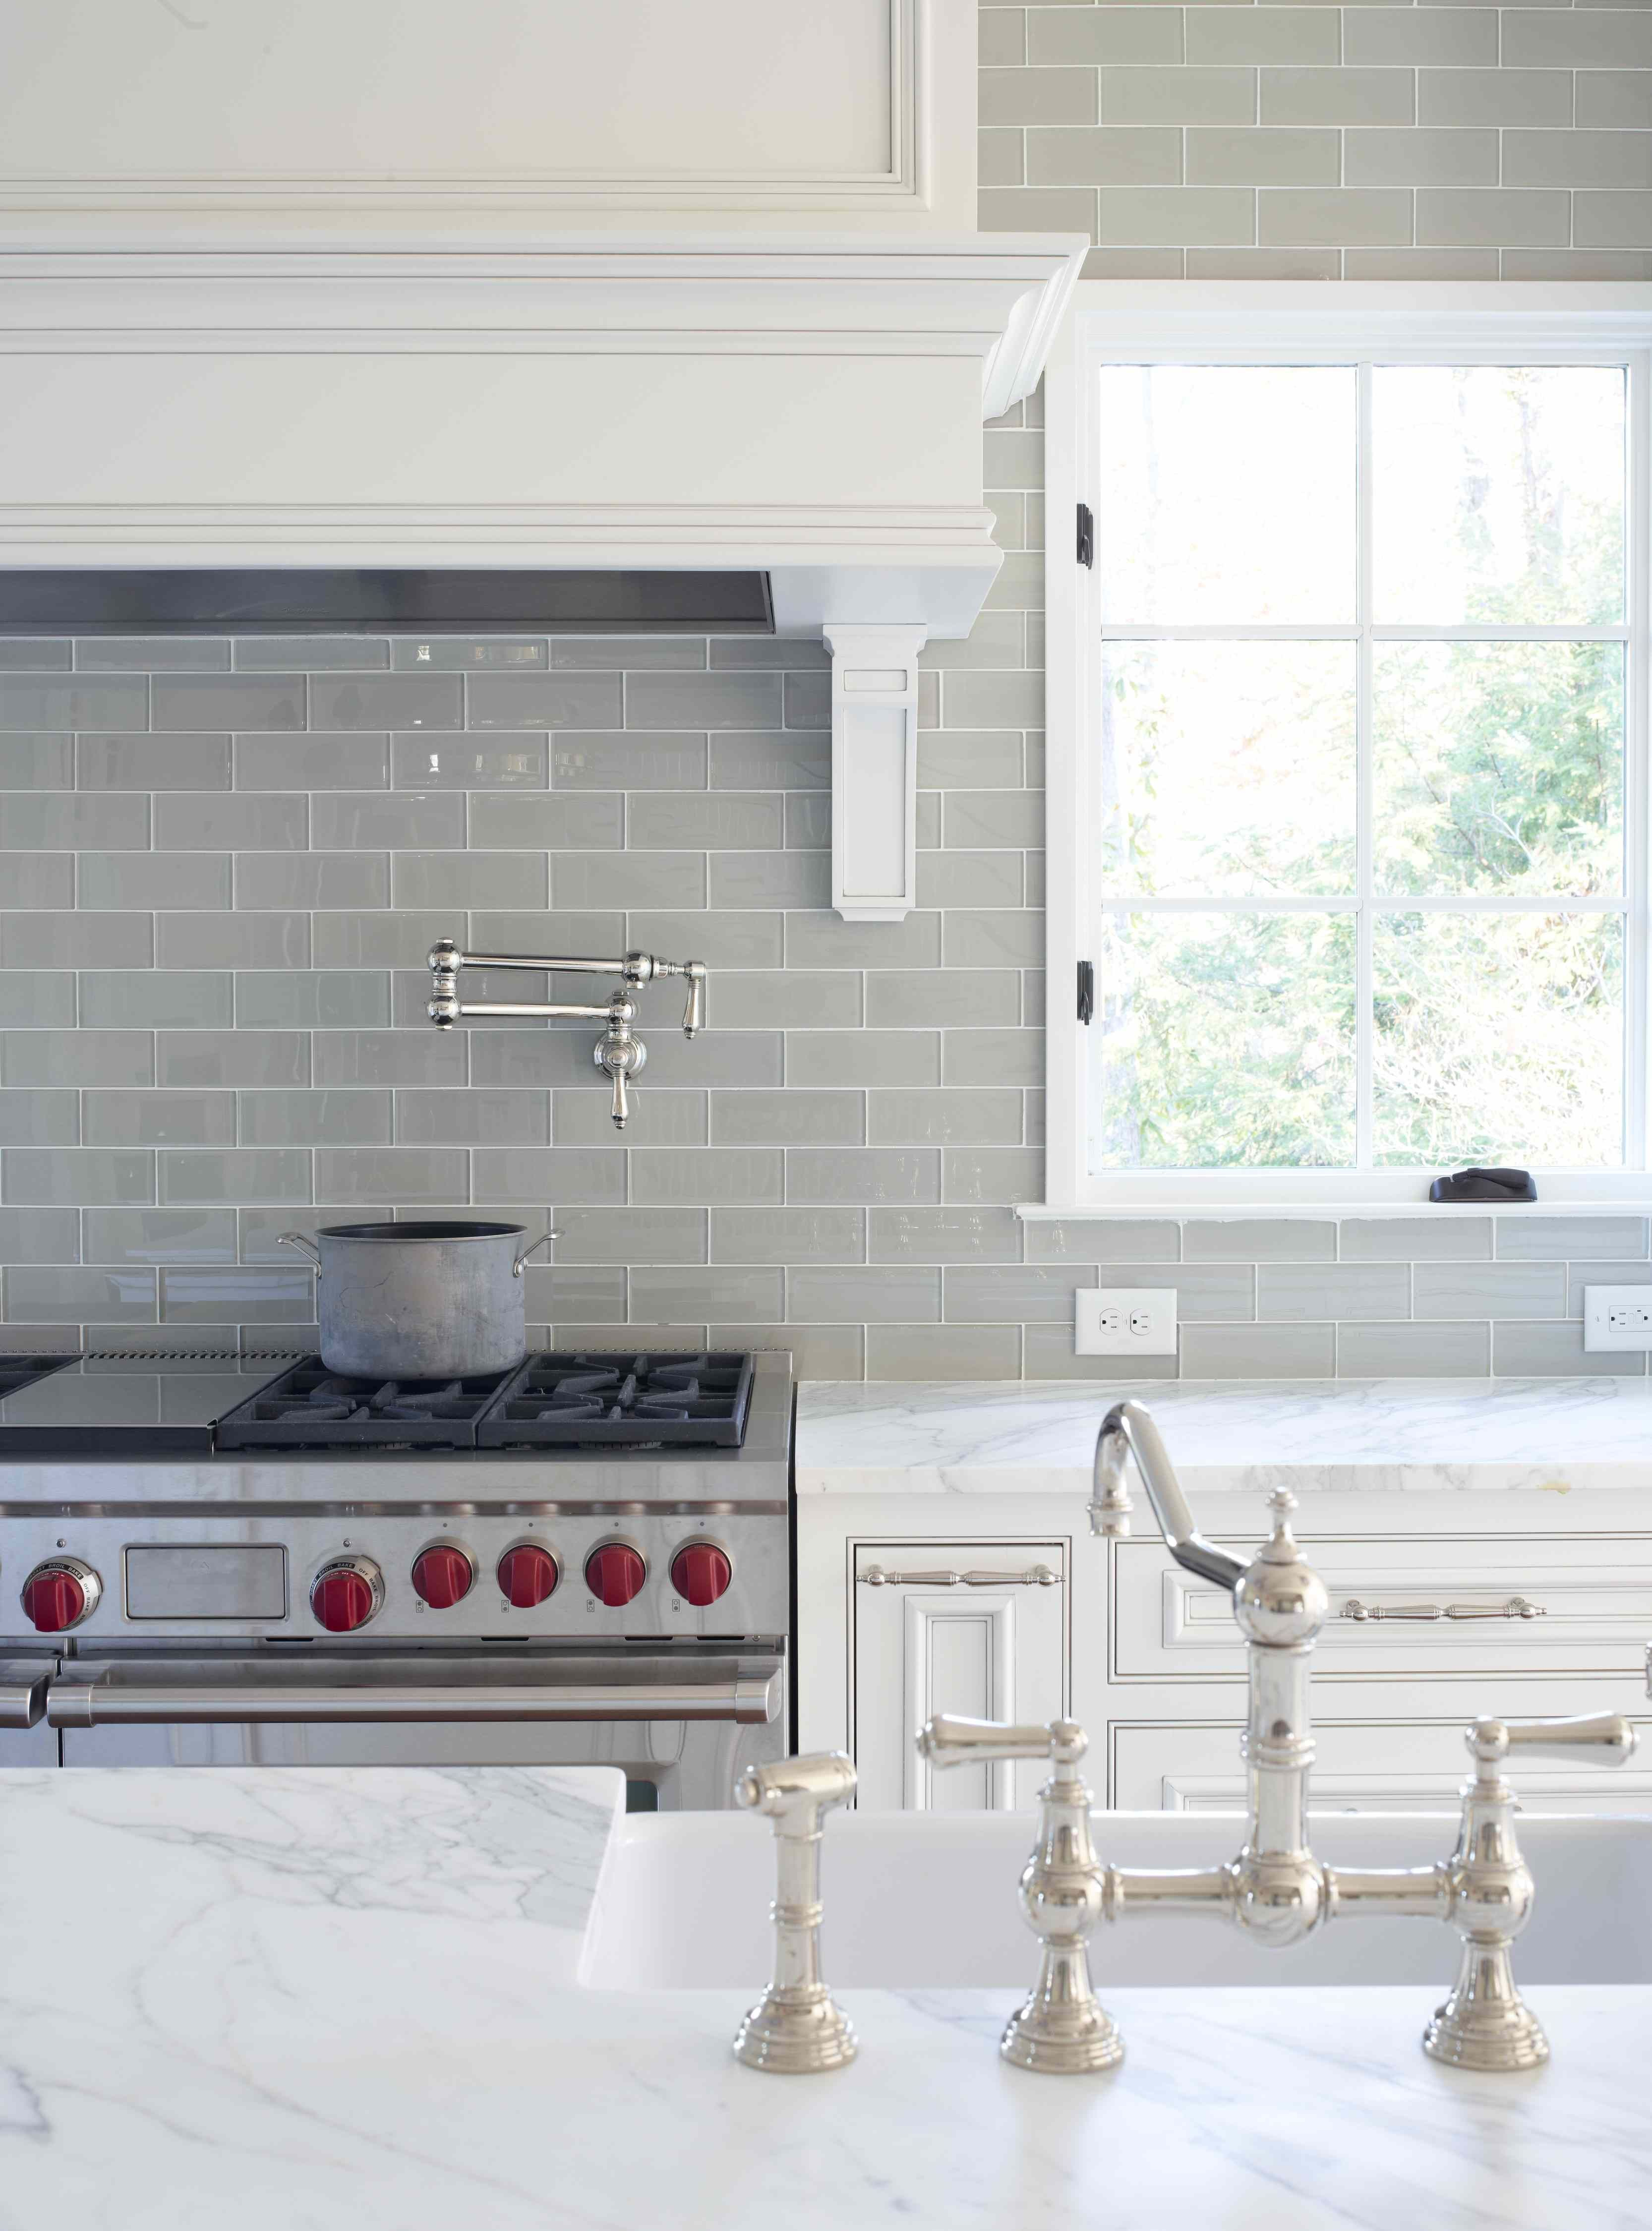 47 Old Fashioned Backsplash Tiles Illustration White Kitchen